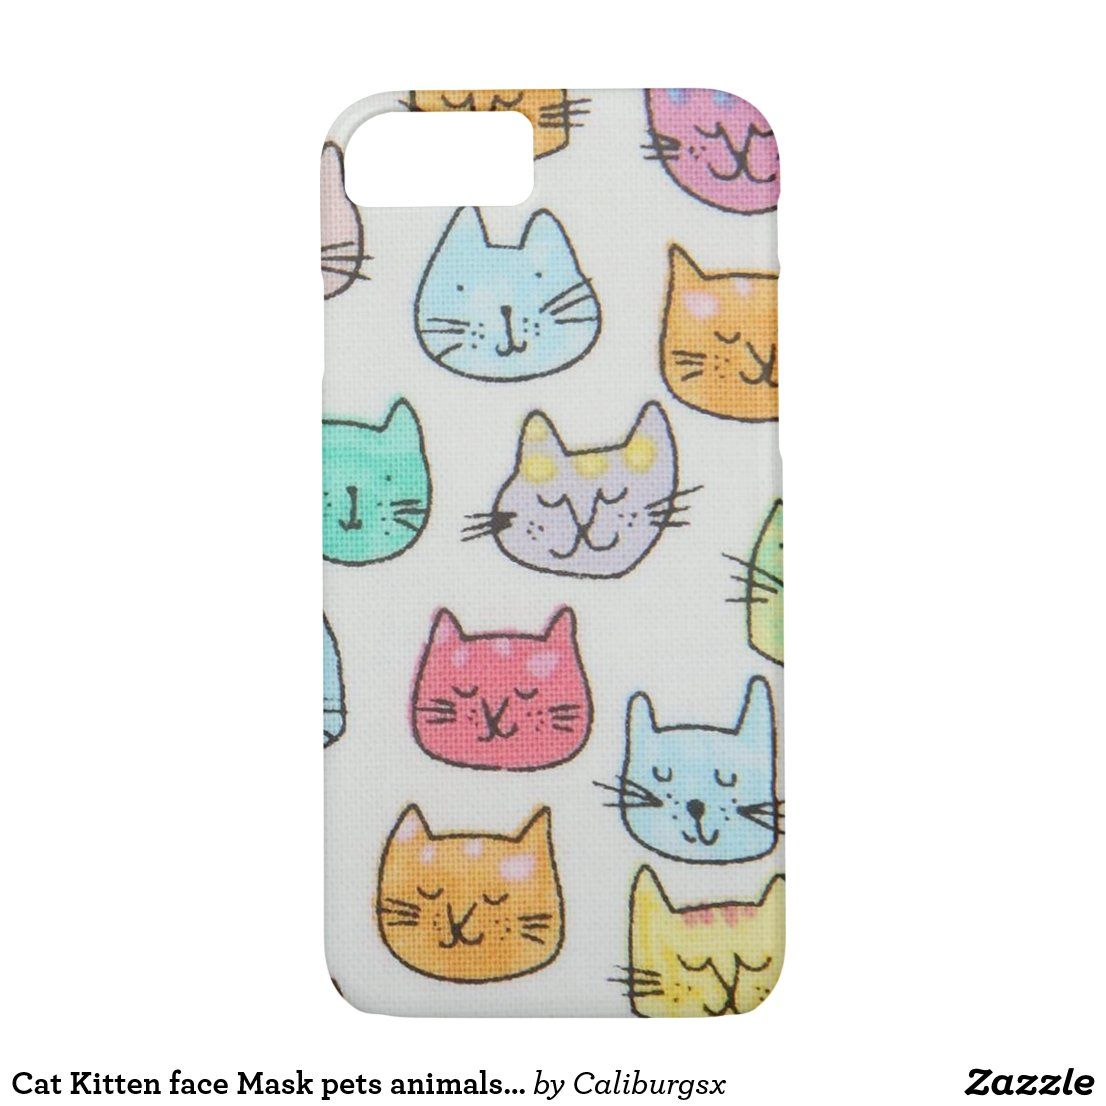 Cat Kitten Face Mask Pets Animals Mom Kitty Case Mate Iphone Case Zazzle Com In 2020 Cats And Kittens Pet Gifts Kitten